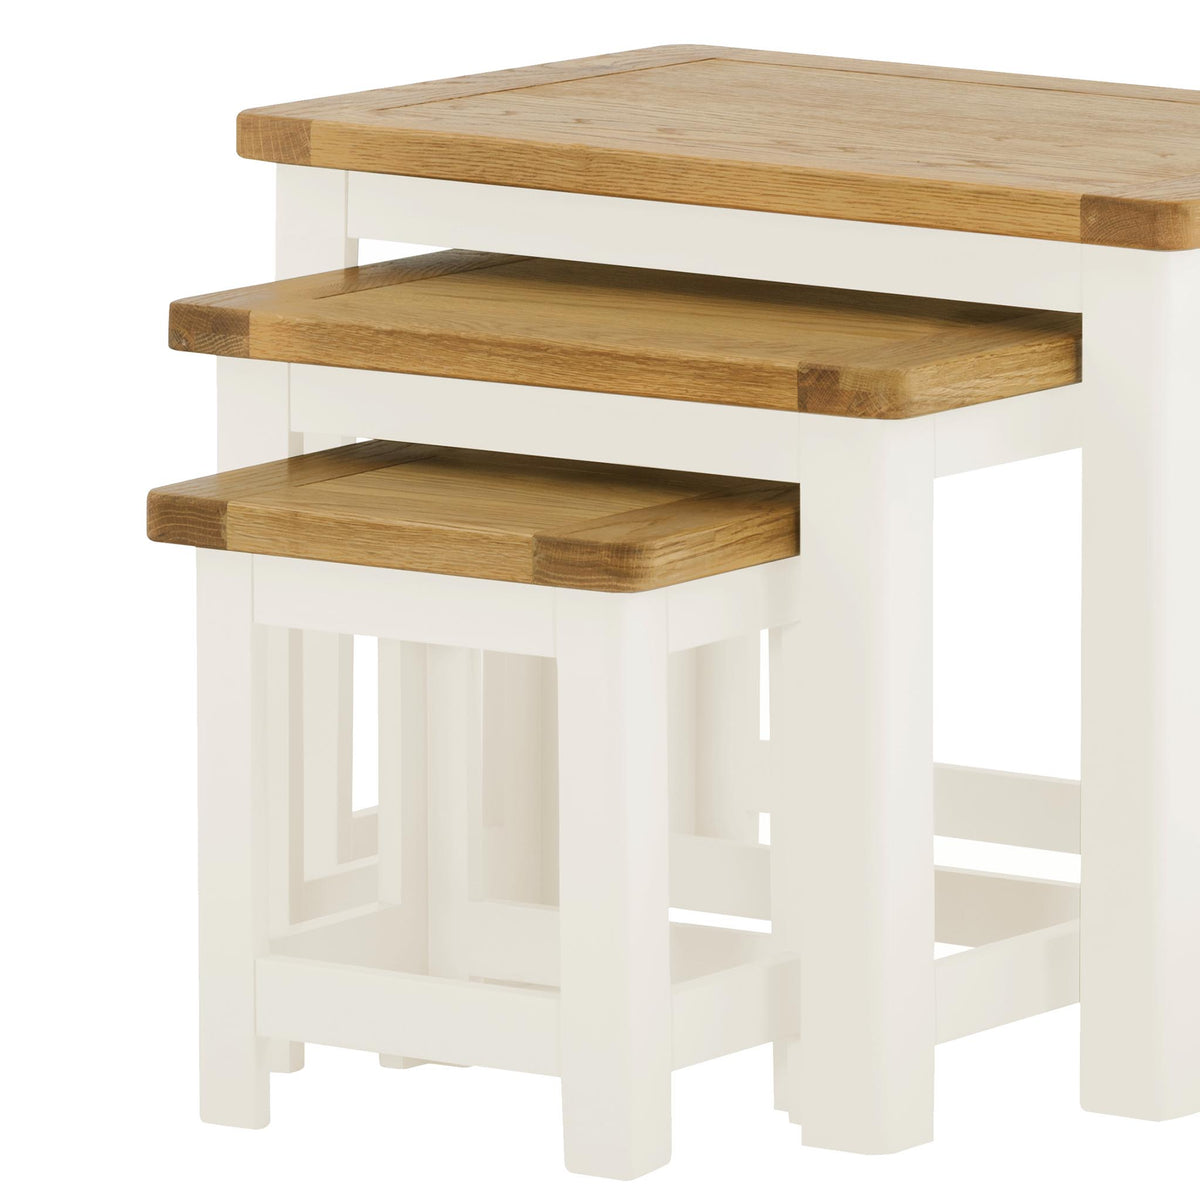 Padstow White Wooden Nest of Tables - Close Up of Oak Table Tops